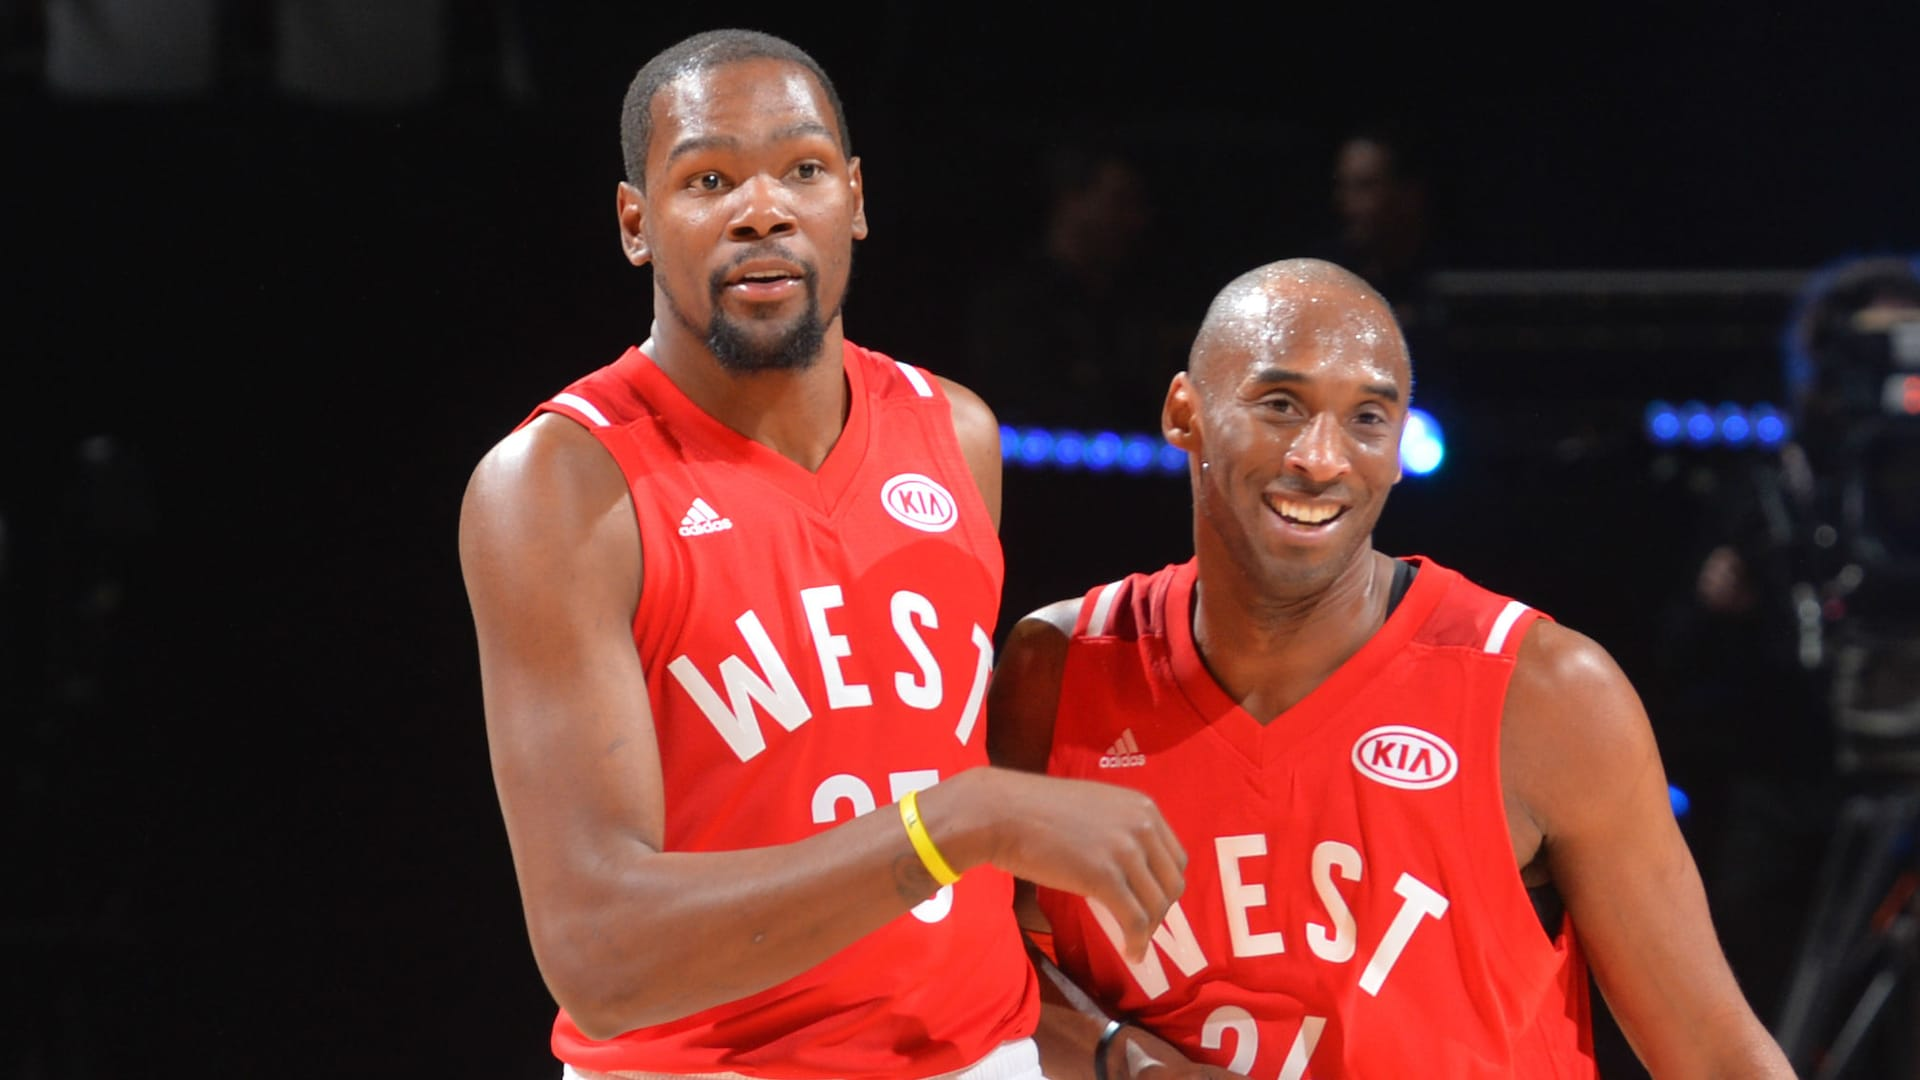 Kevin Durant mourns death of Kobe Bryant, says it's hard to move forward